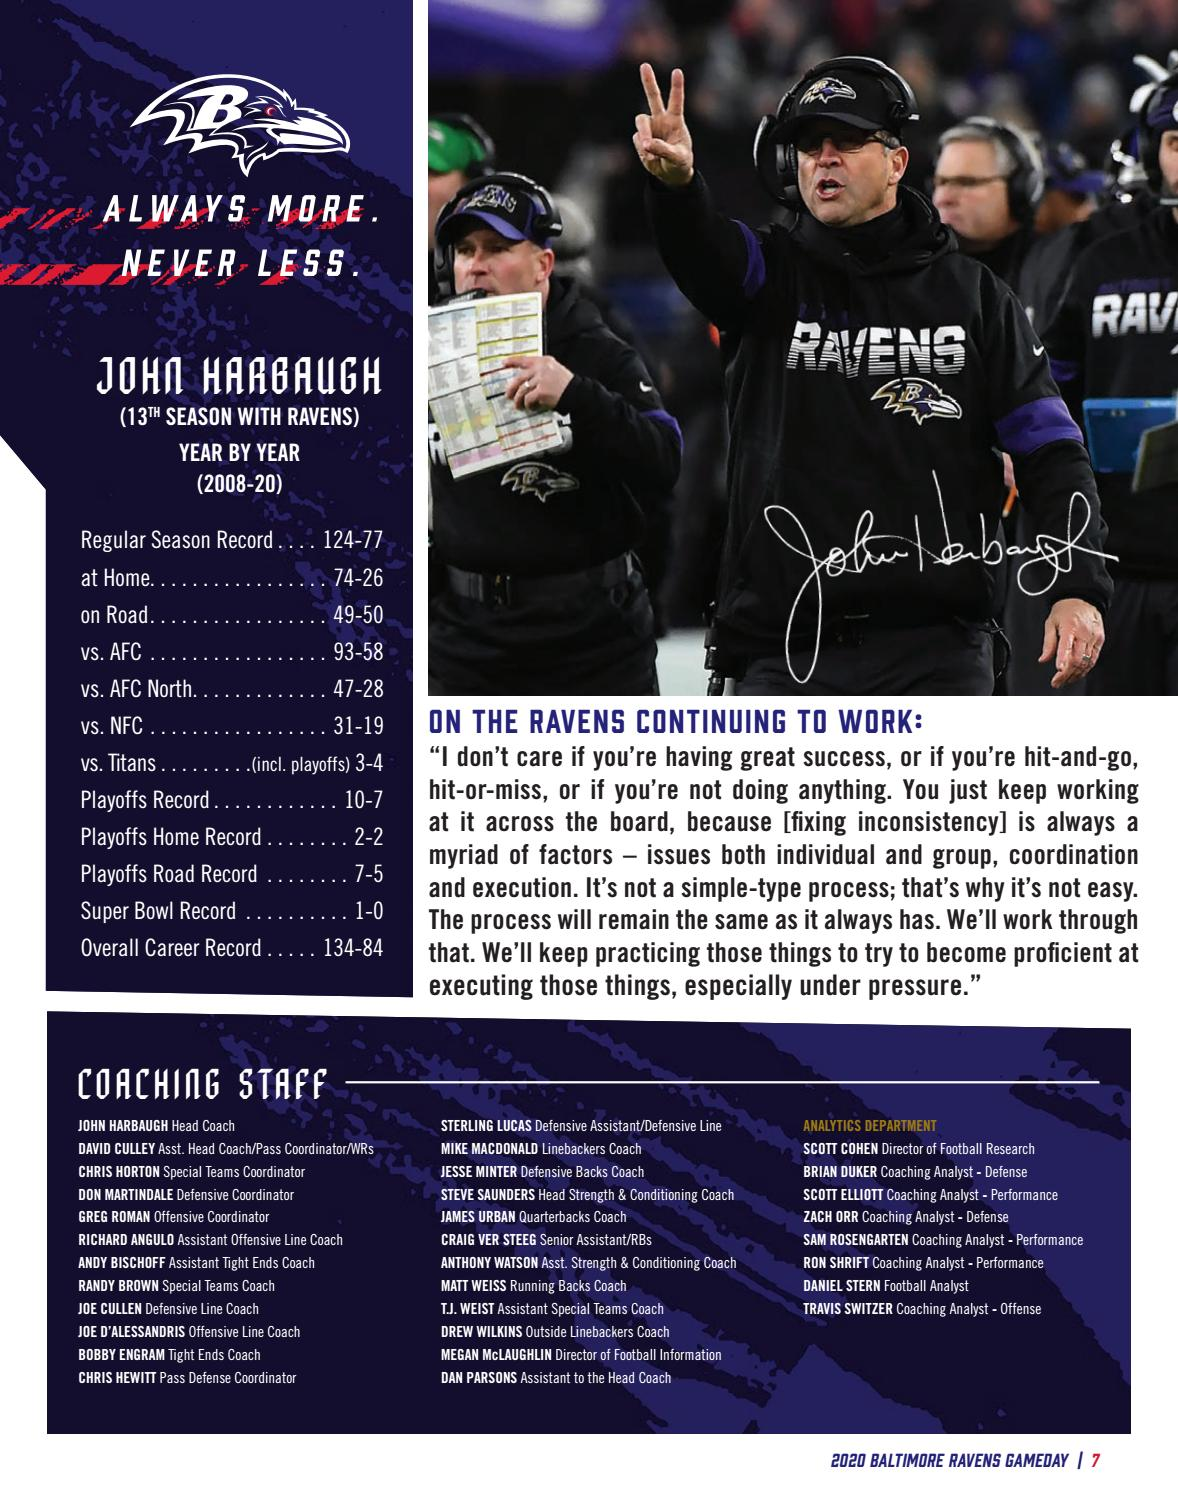 Gameday 11 22 Tennessee Titans Vs Baltimore Ravens By Baltimore Ravens Issuu